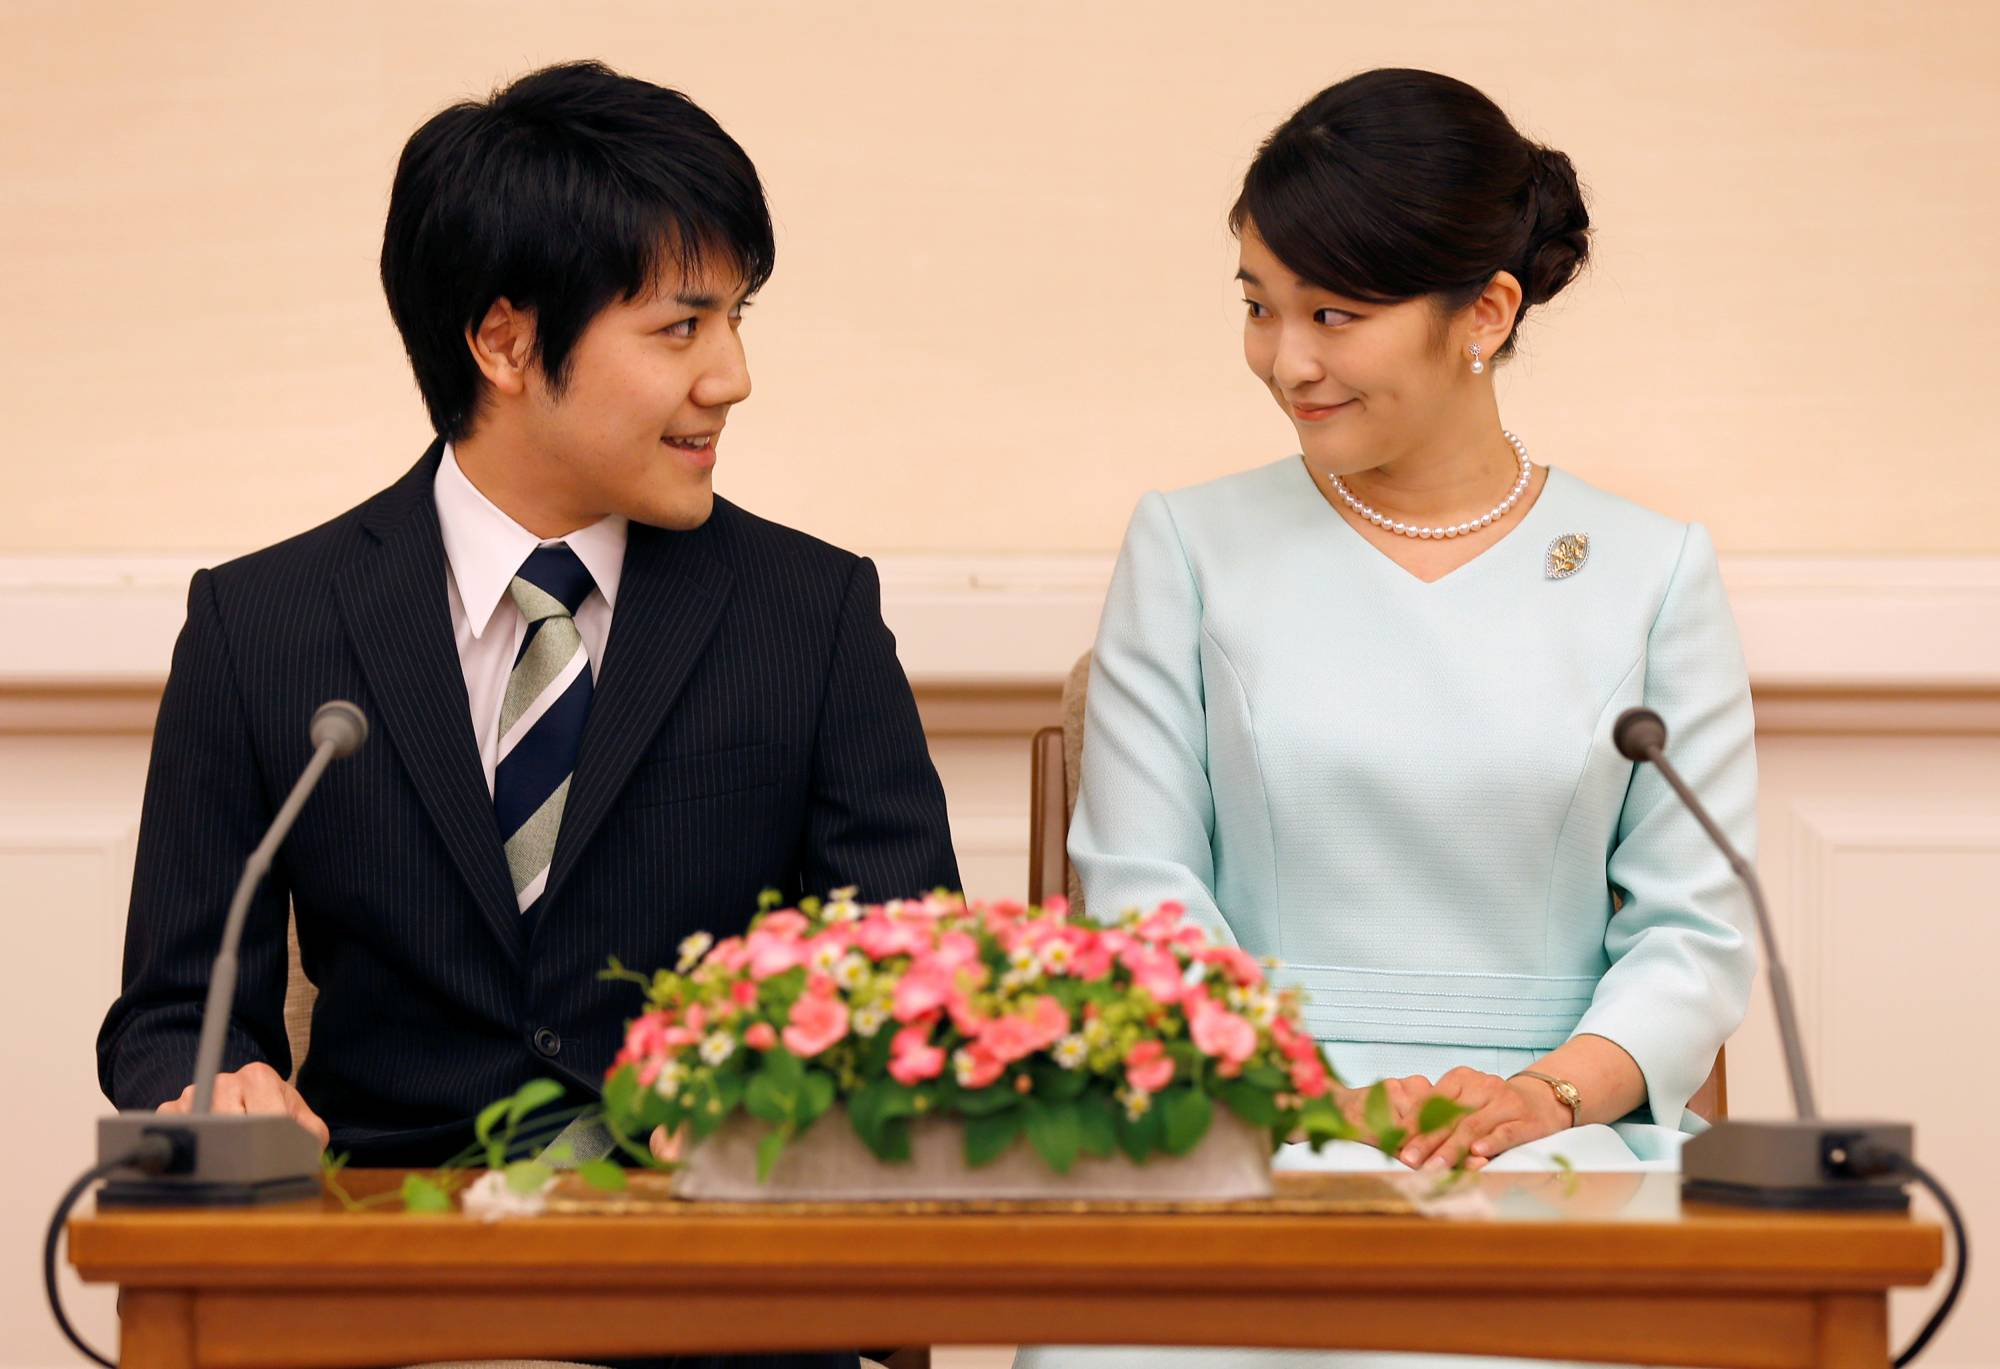 Princess Mako, the elder daughter of Crown Prince Akishino and Princess Kiko, and Kei Komuro, smile during a news conference to announce their engagement in Tokyo, in September 2017. | POOL / VIA REUTERS